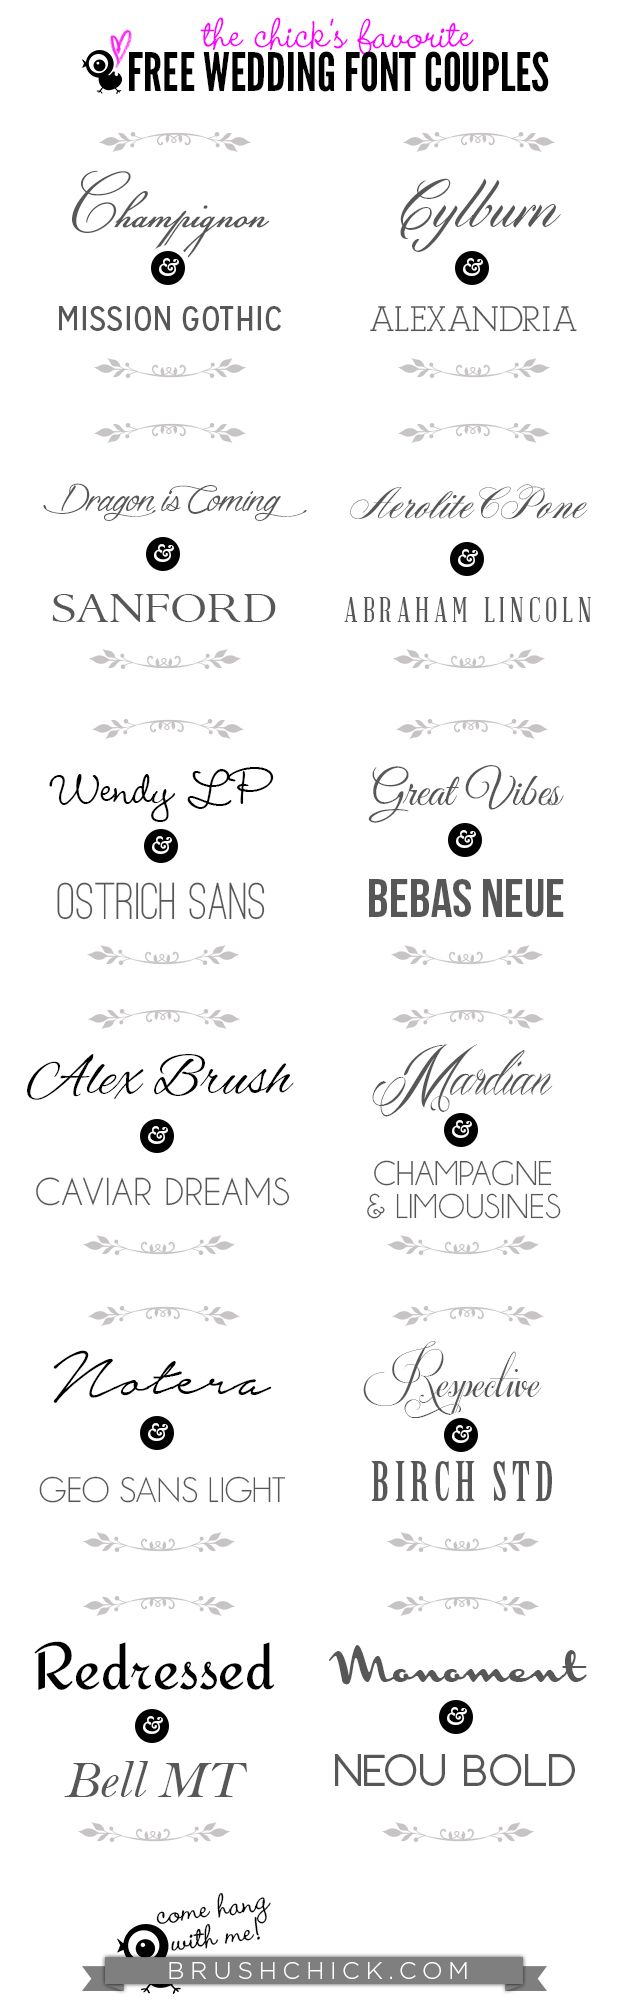 Free Wedding Font Couples